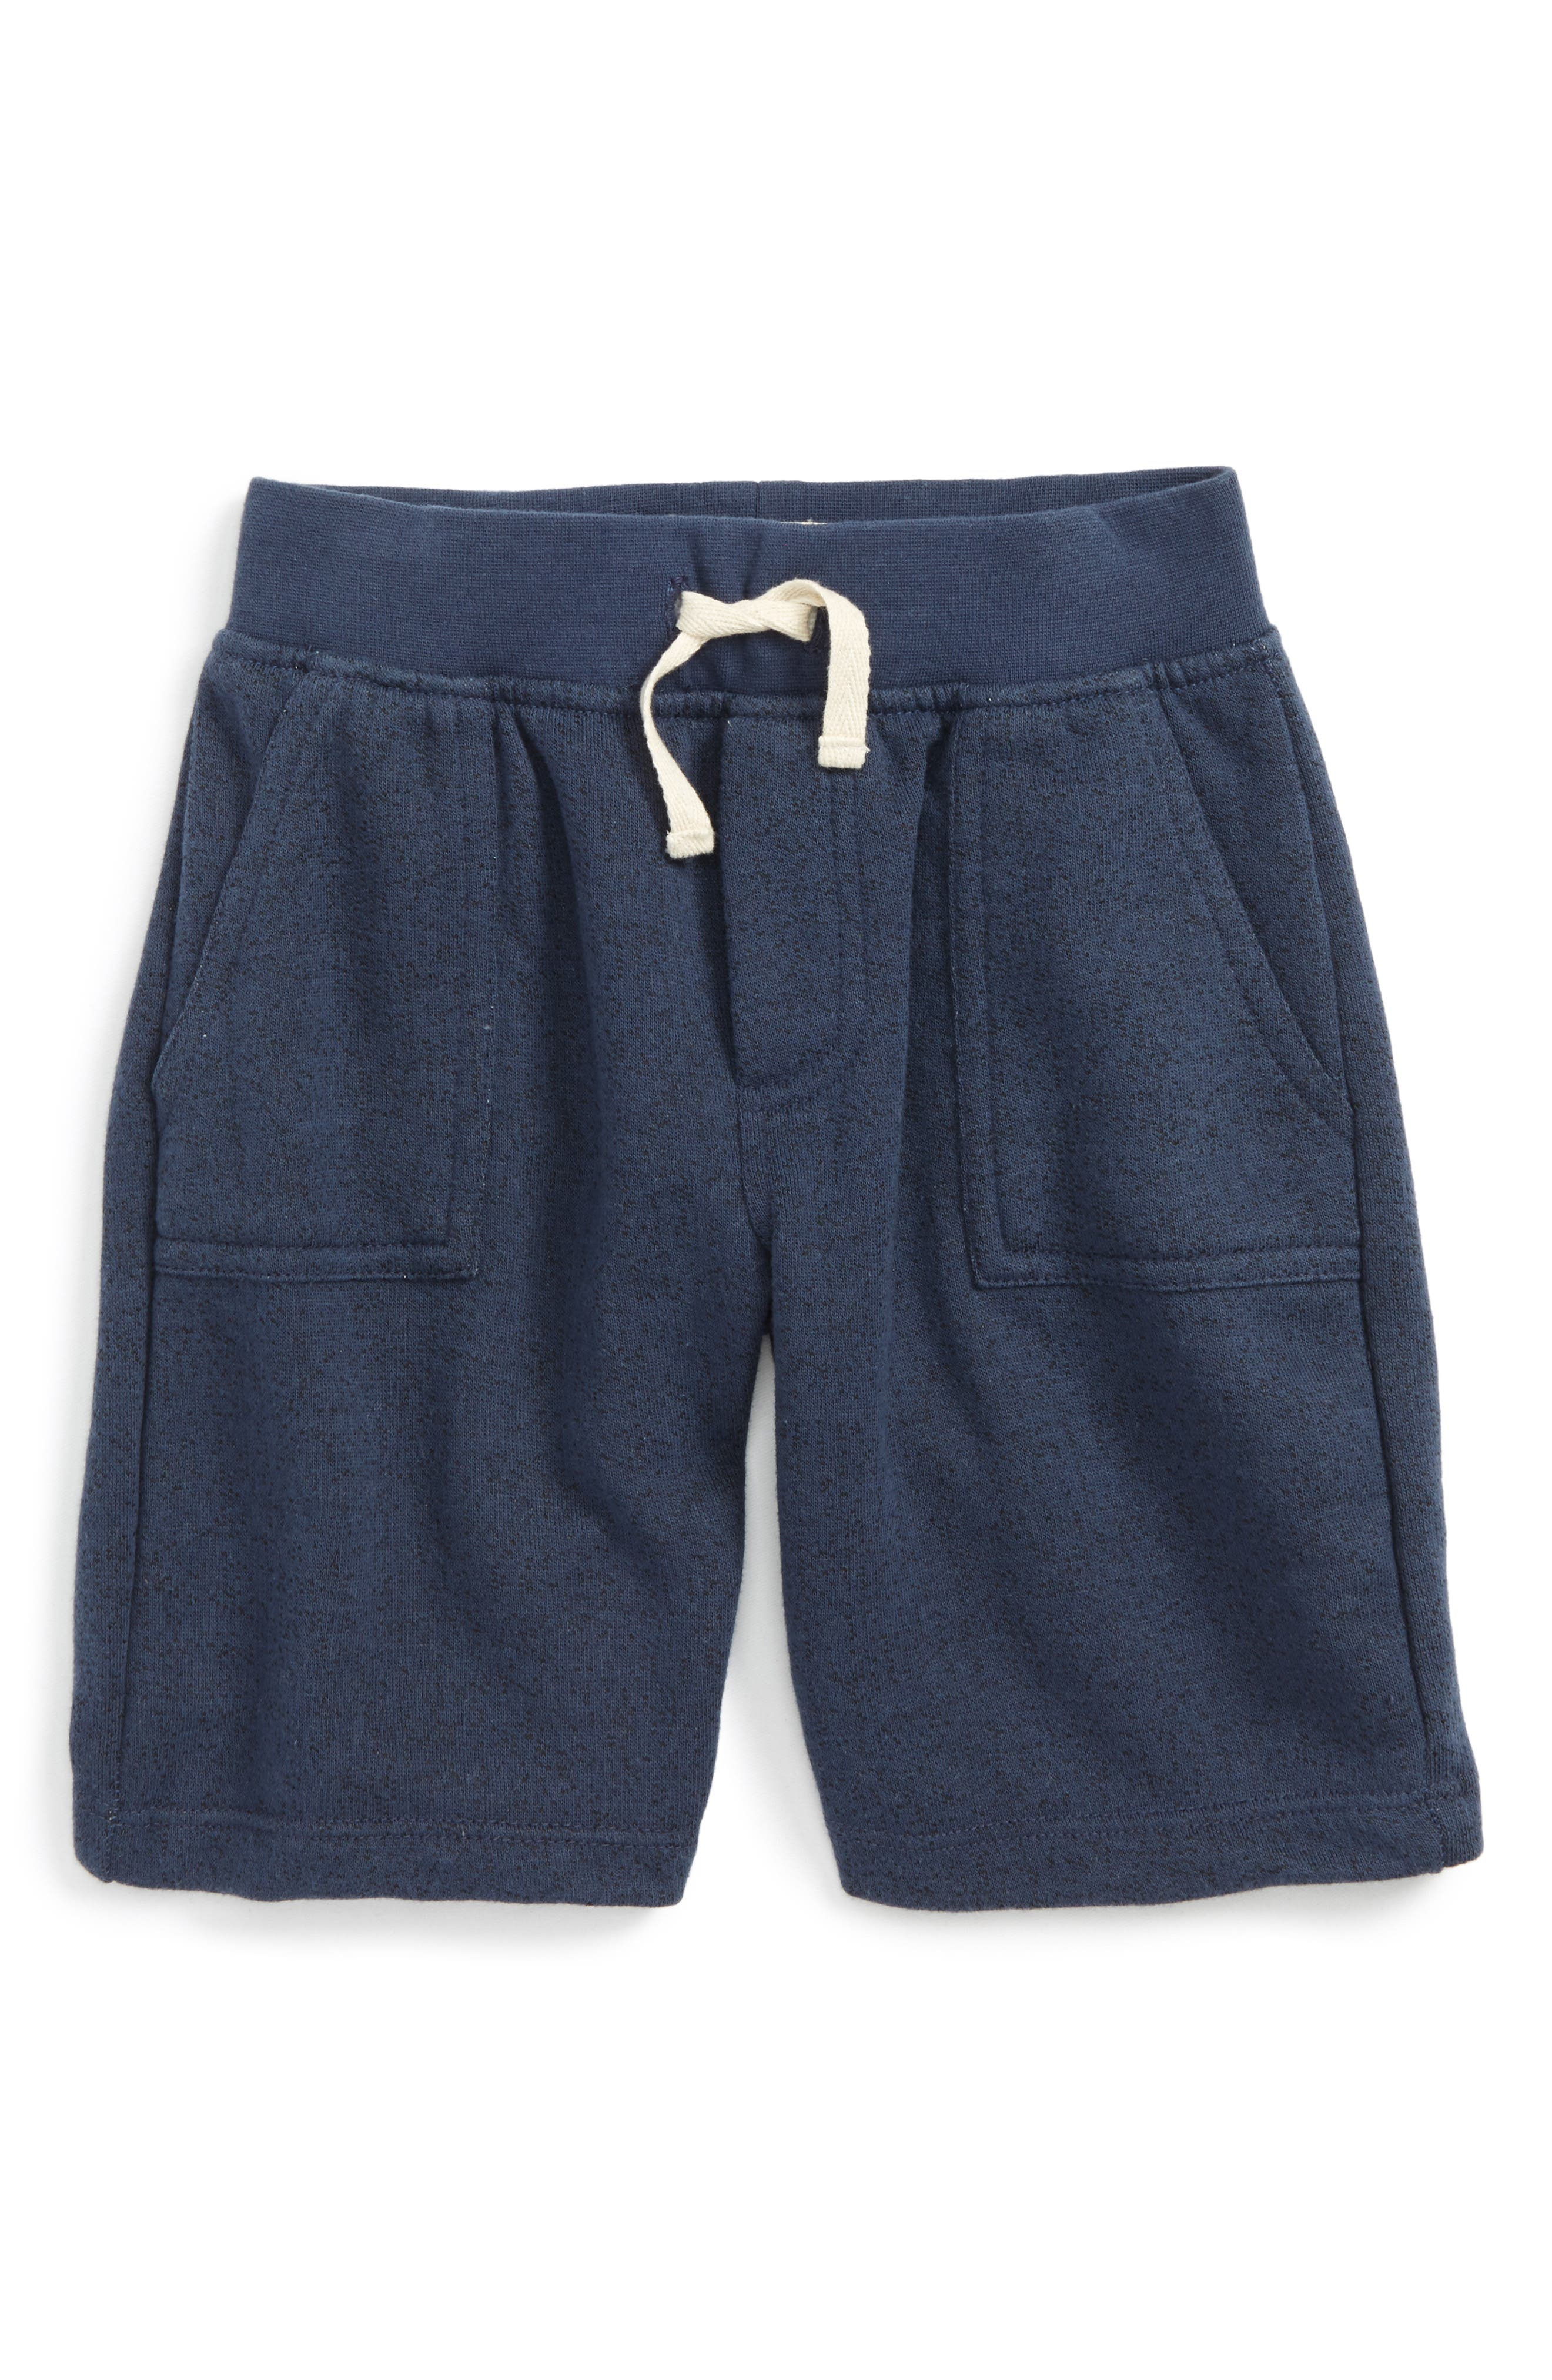 Stephen Shorts,                         Main,                         color, 425